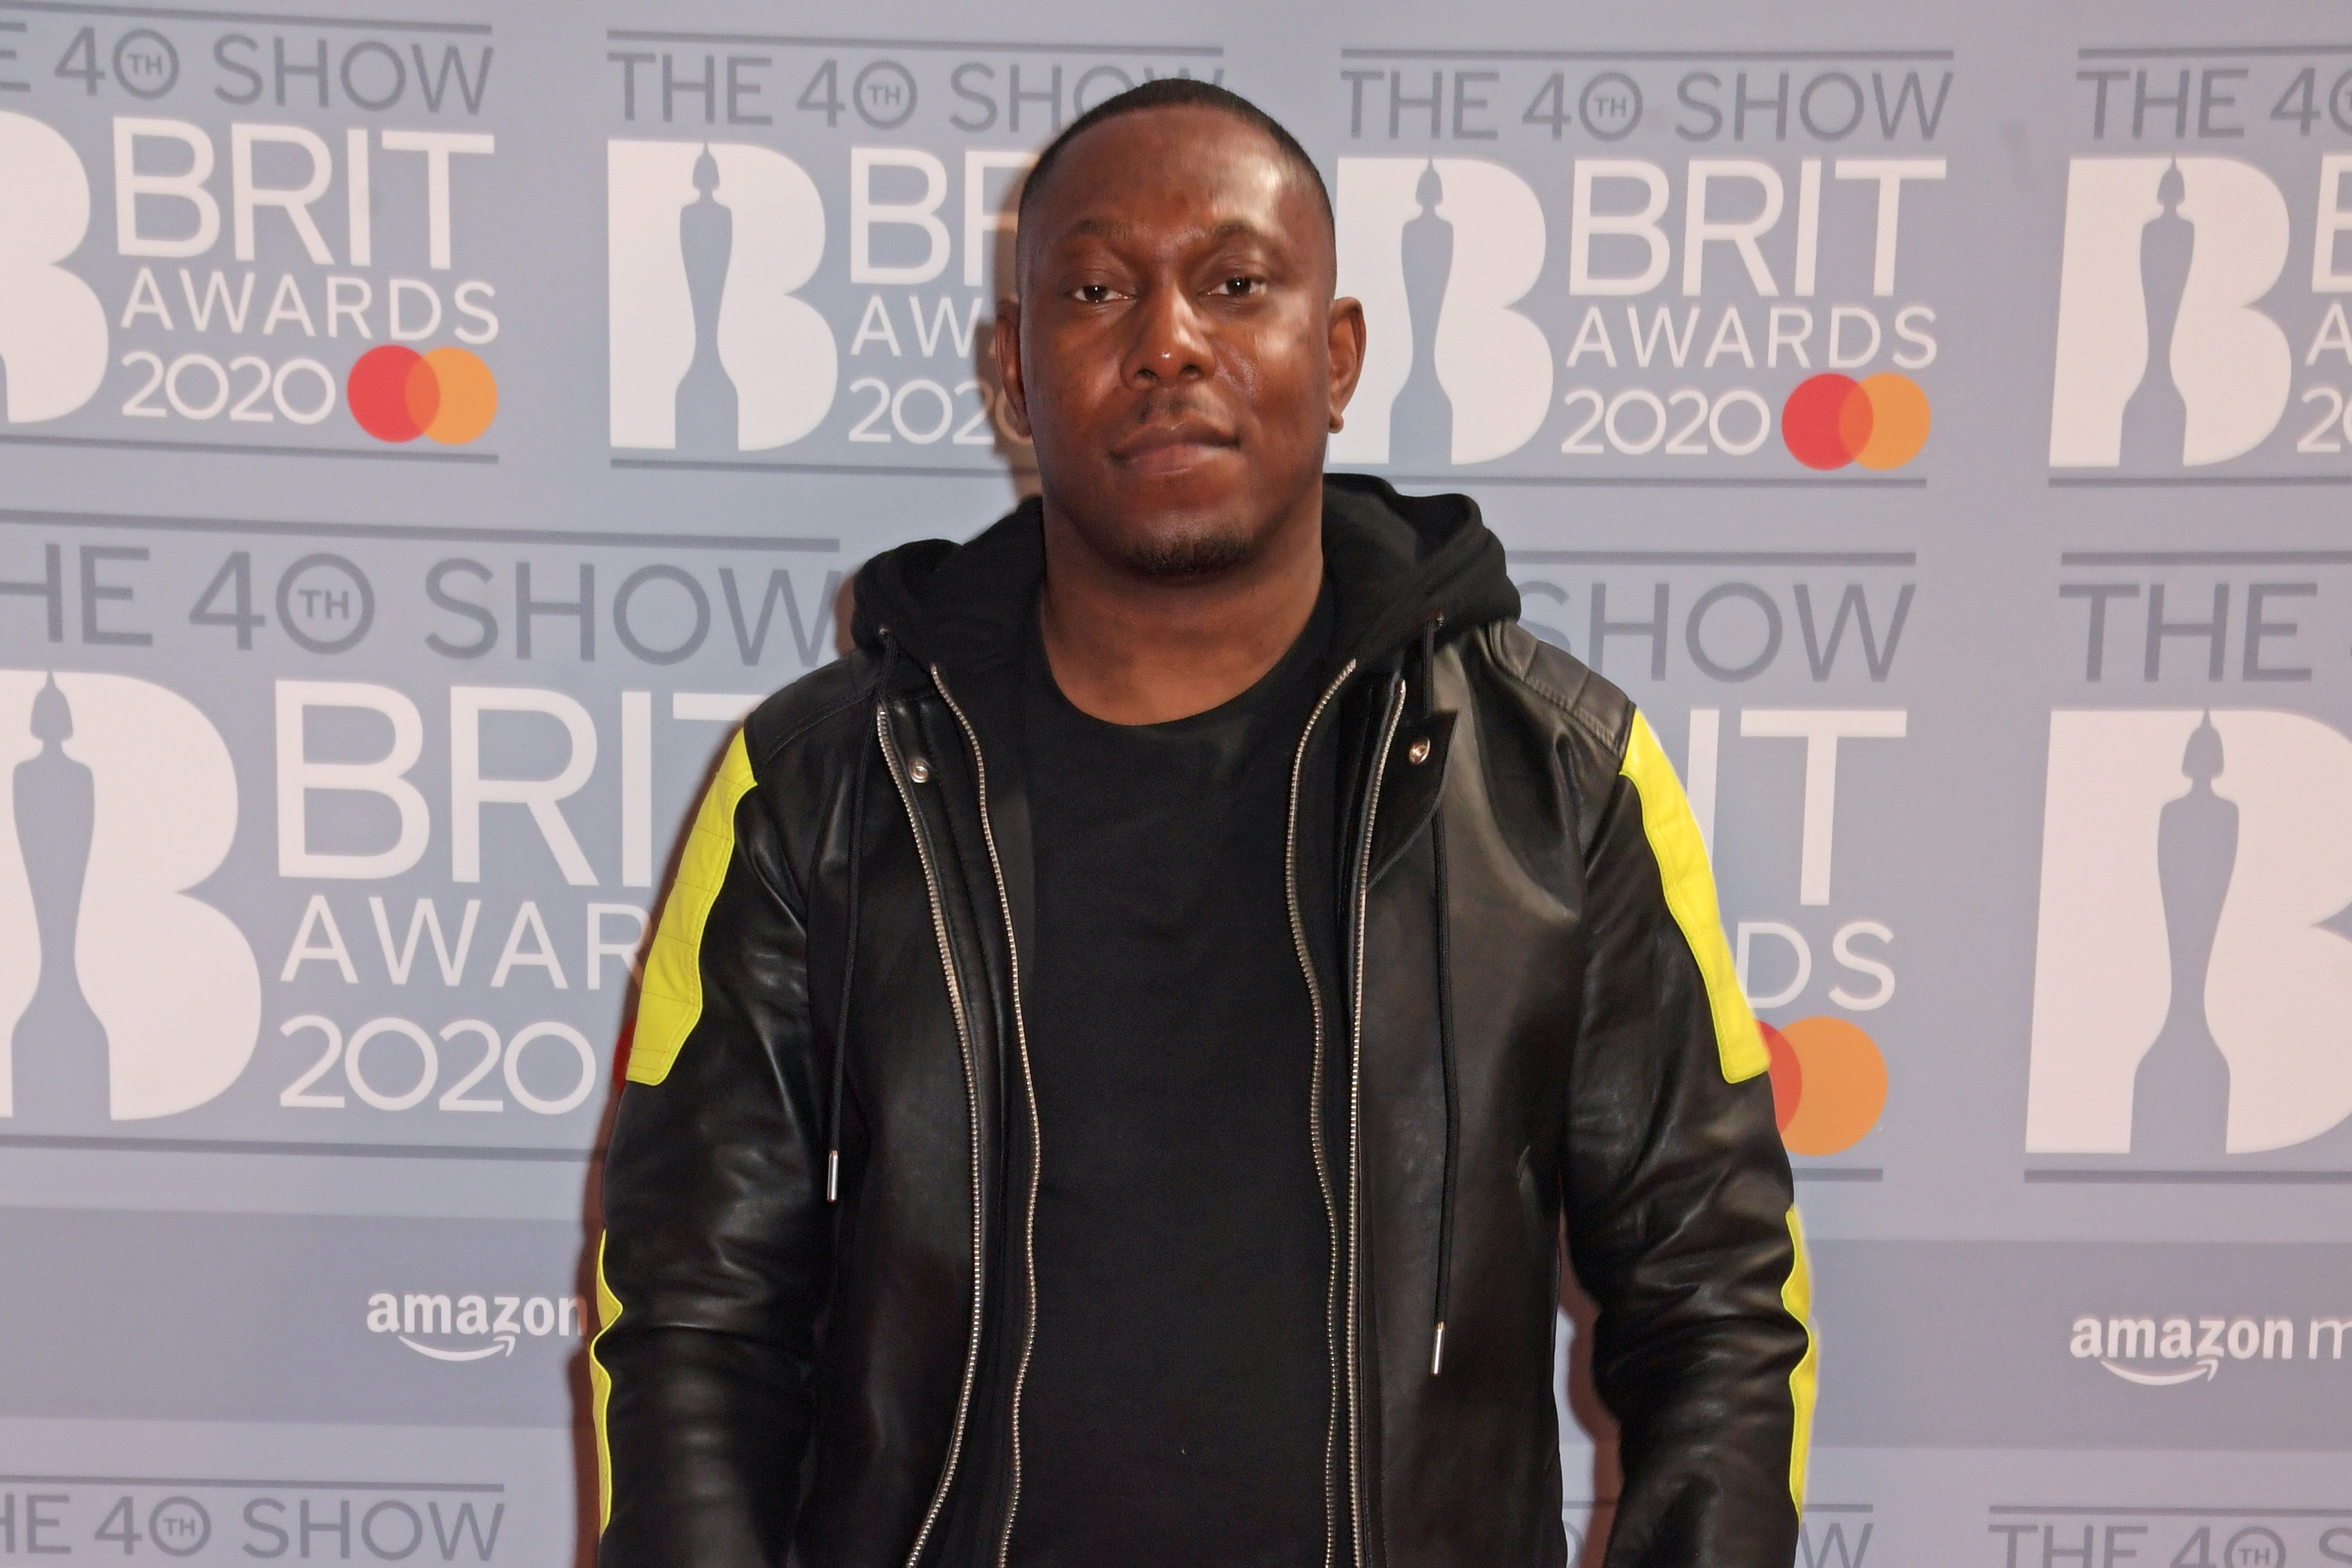 Dizzee Rascal attends The BRIT Awards 2020 at The O2 Arena on February 18, 2020 in London, England.  (Photo by David M. Benett/Dave Benett/Getty Images)